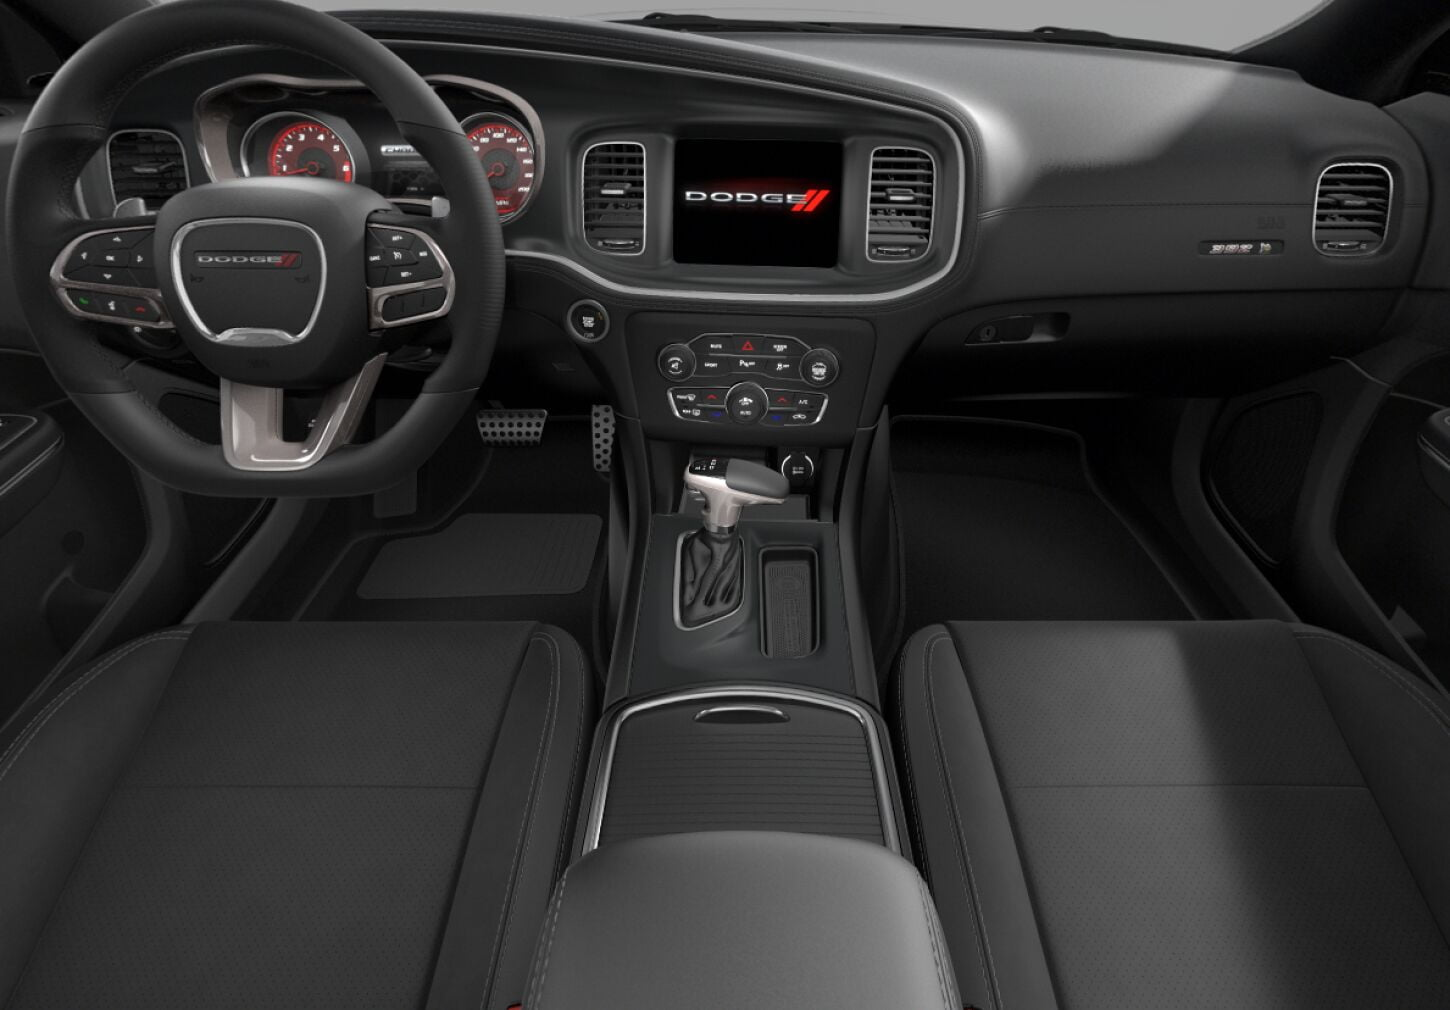 Dodge Challenger Interior >> Buy Dodge Charger Scat Pack Widebody | Muscle car | Official importer